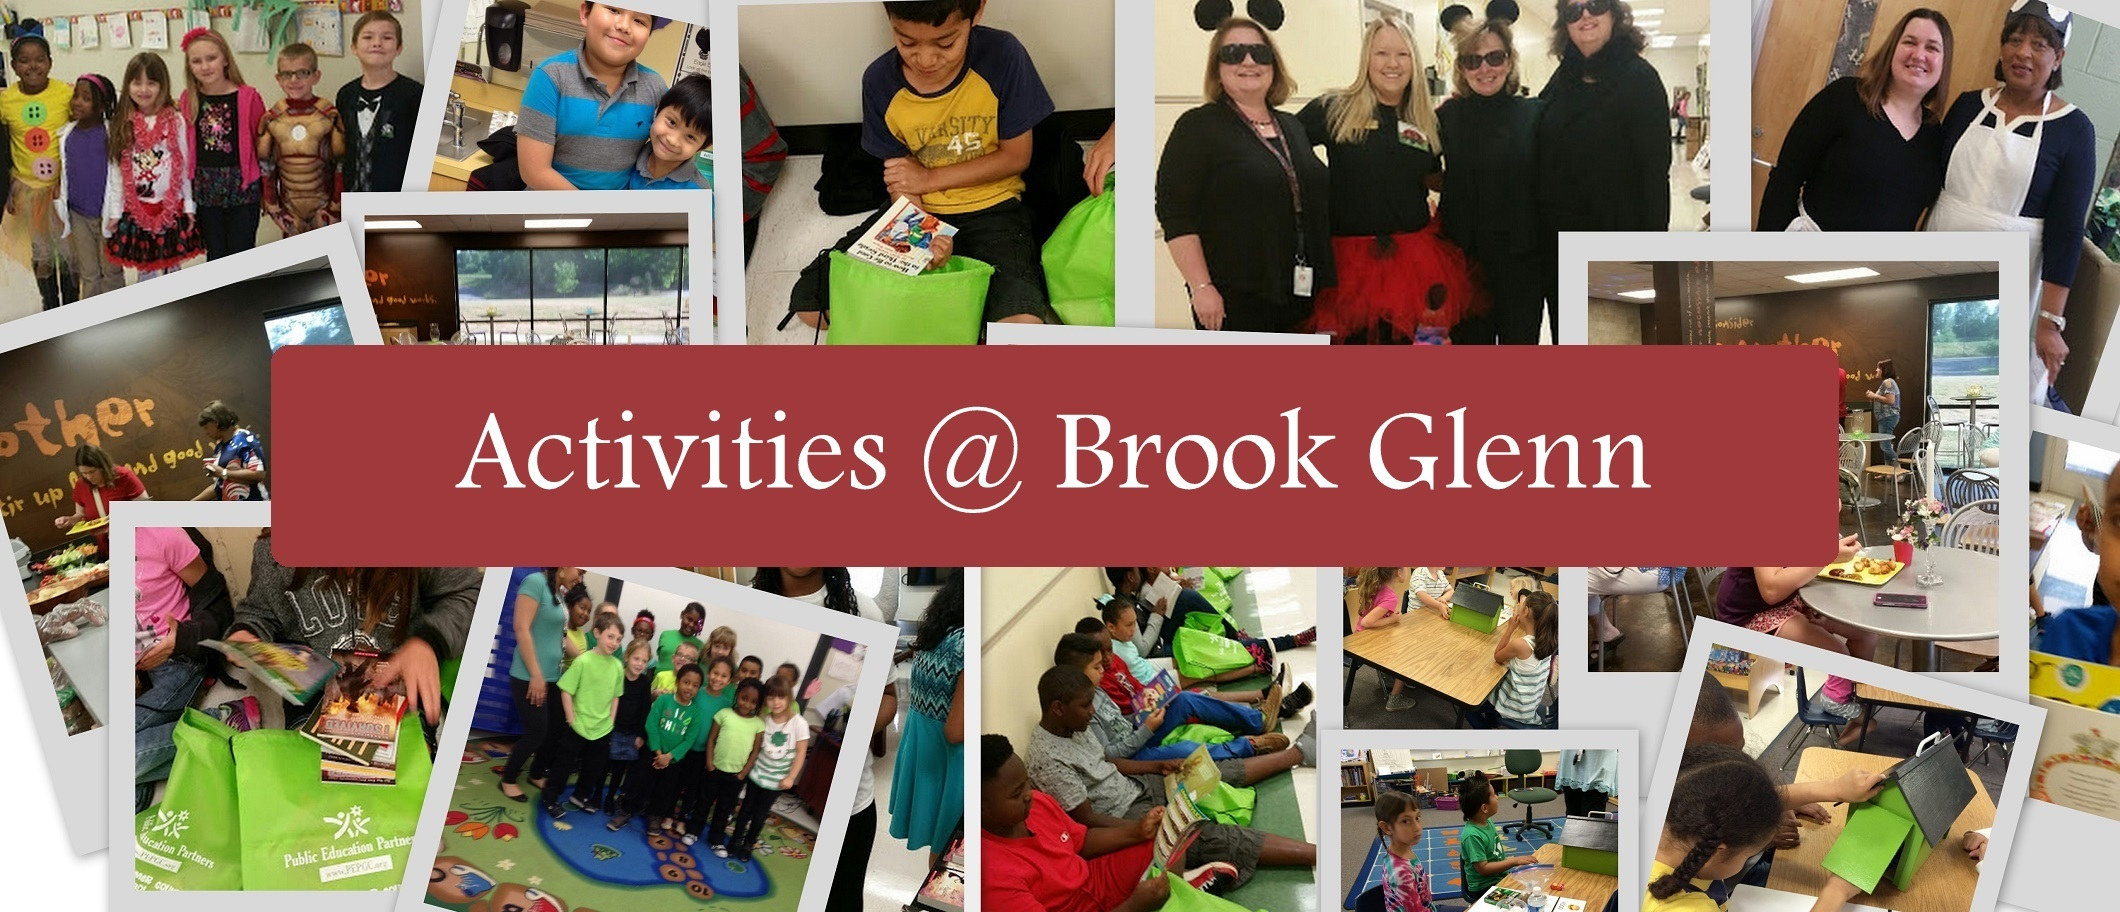 Activities at Brook Glenn